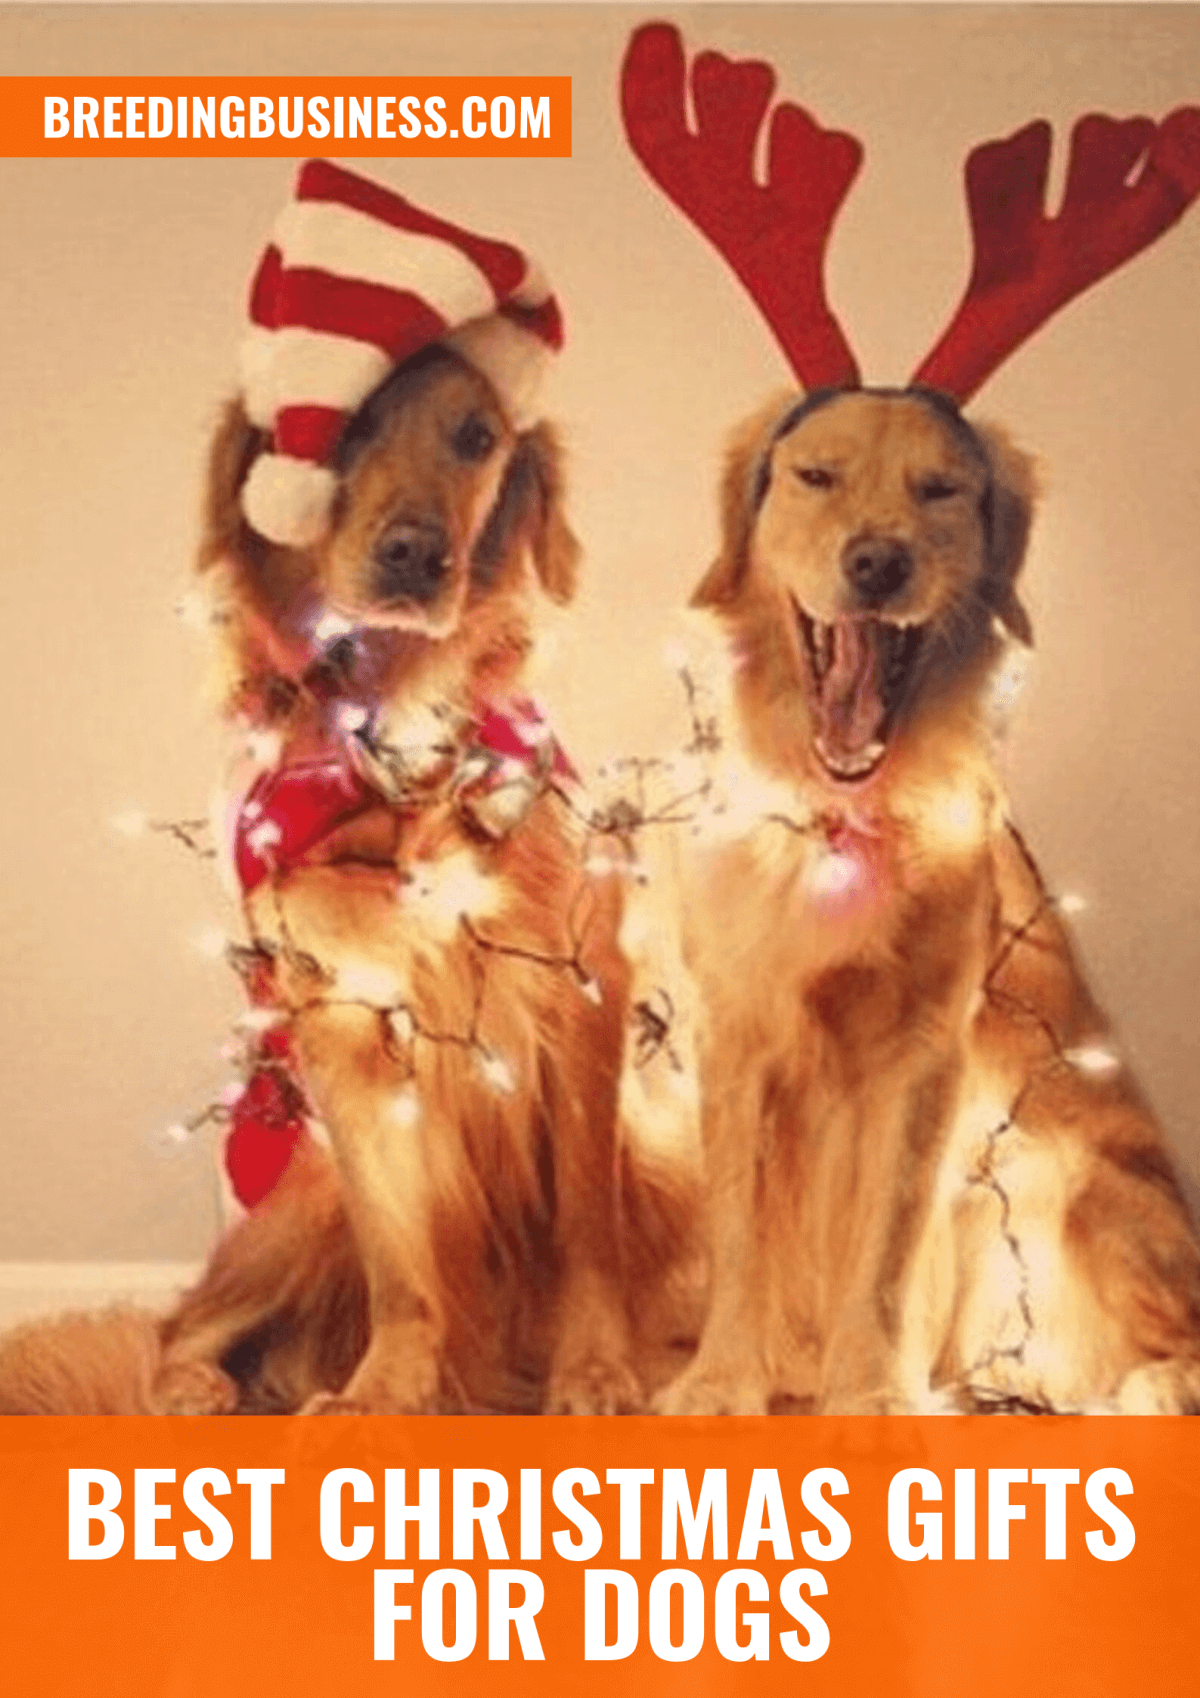 Top Christmas Gifts for Dogs